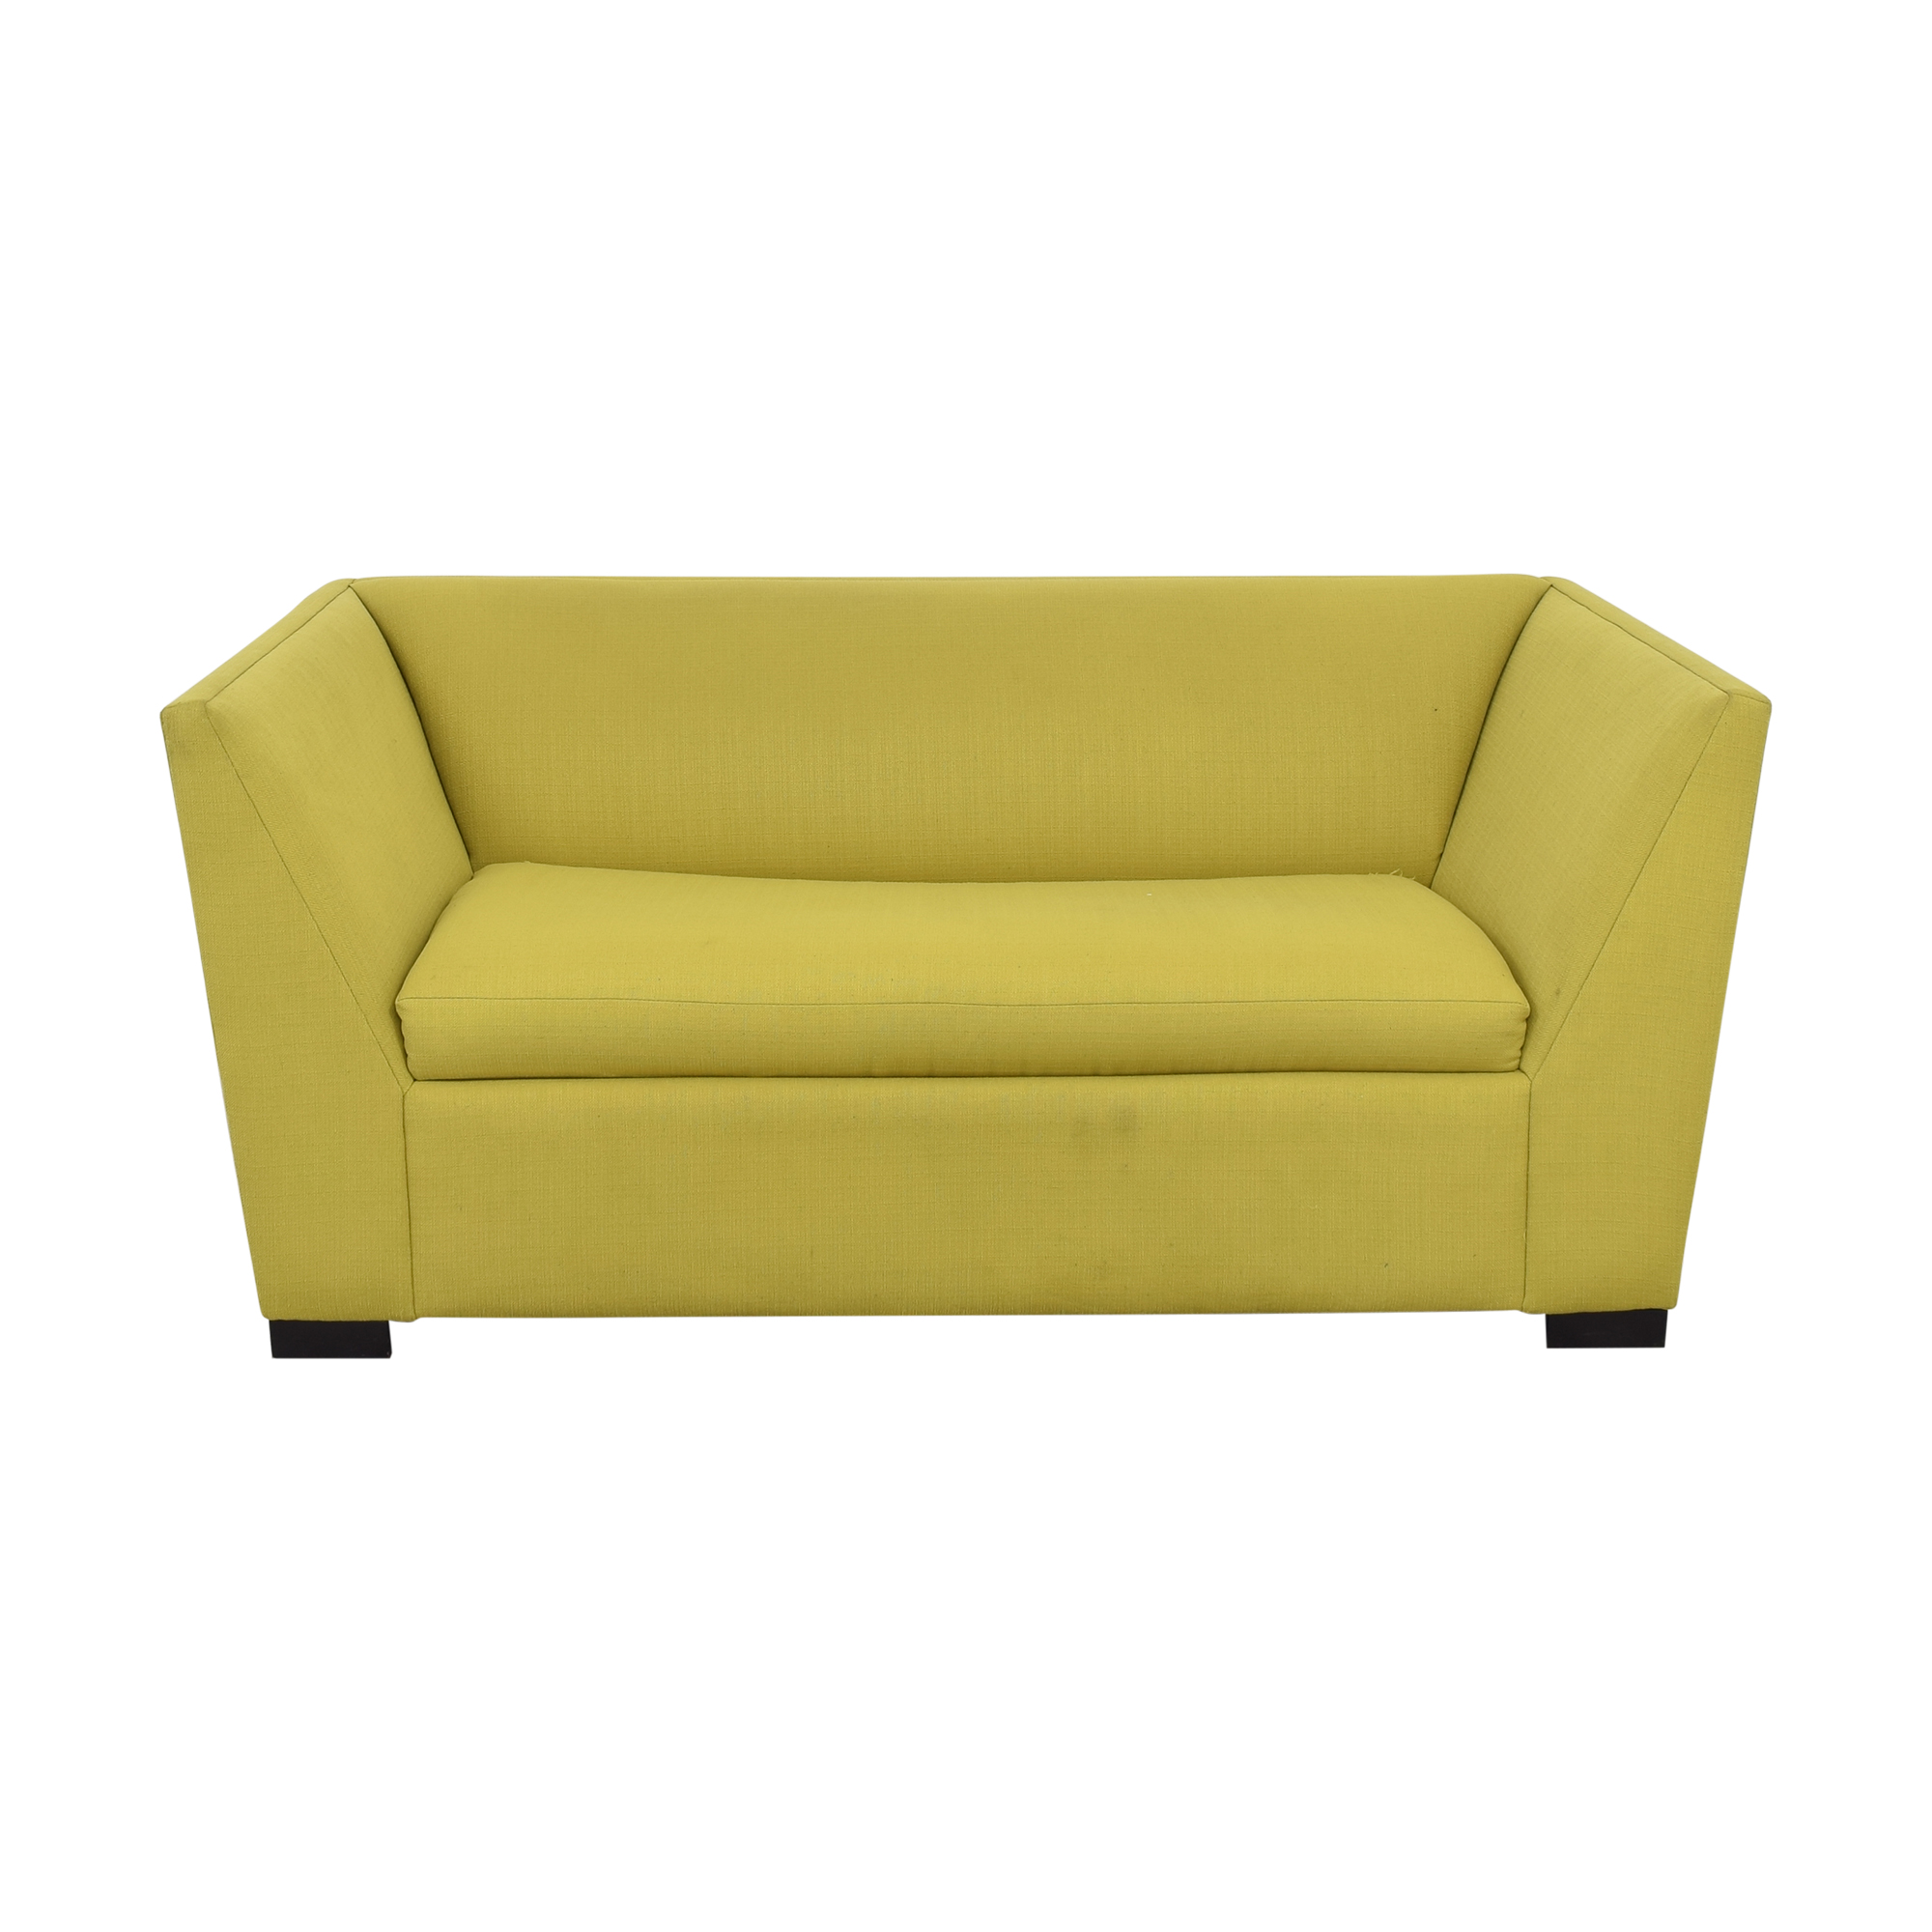 CB2 CB2 Twin Sleeper Loveseat